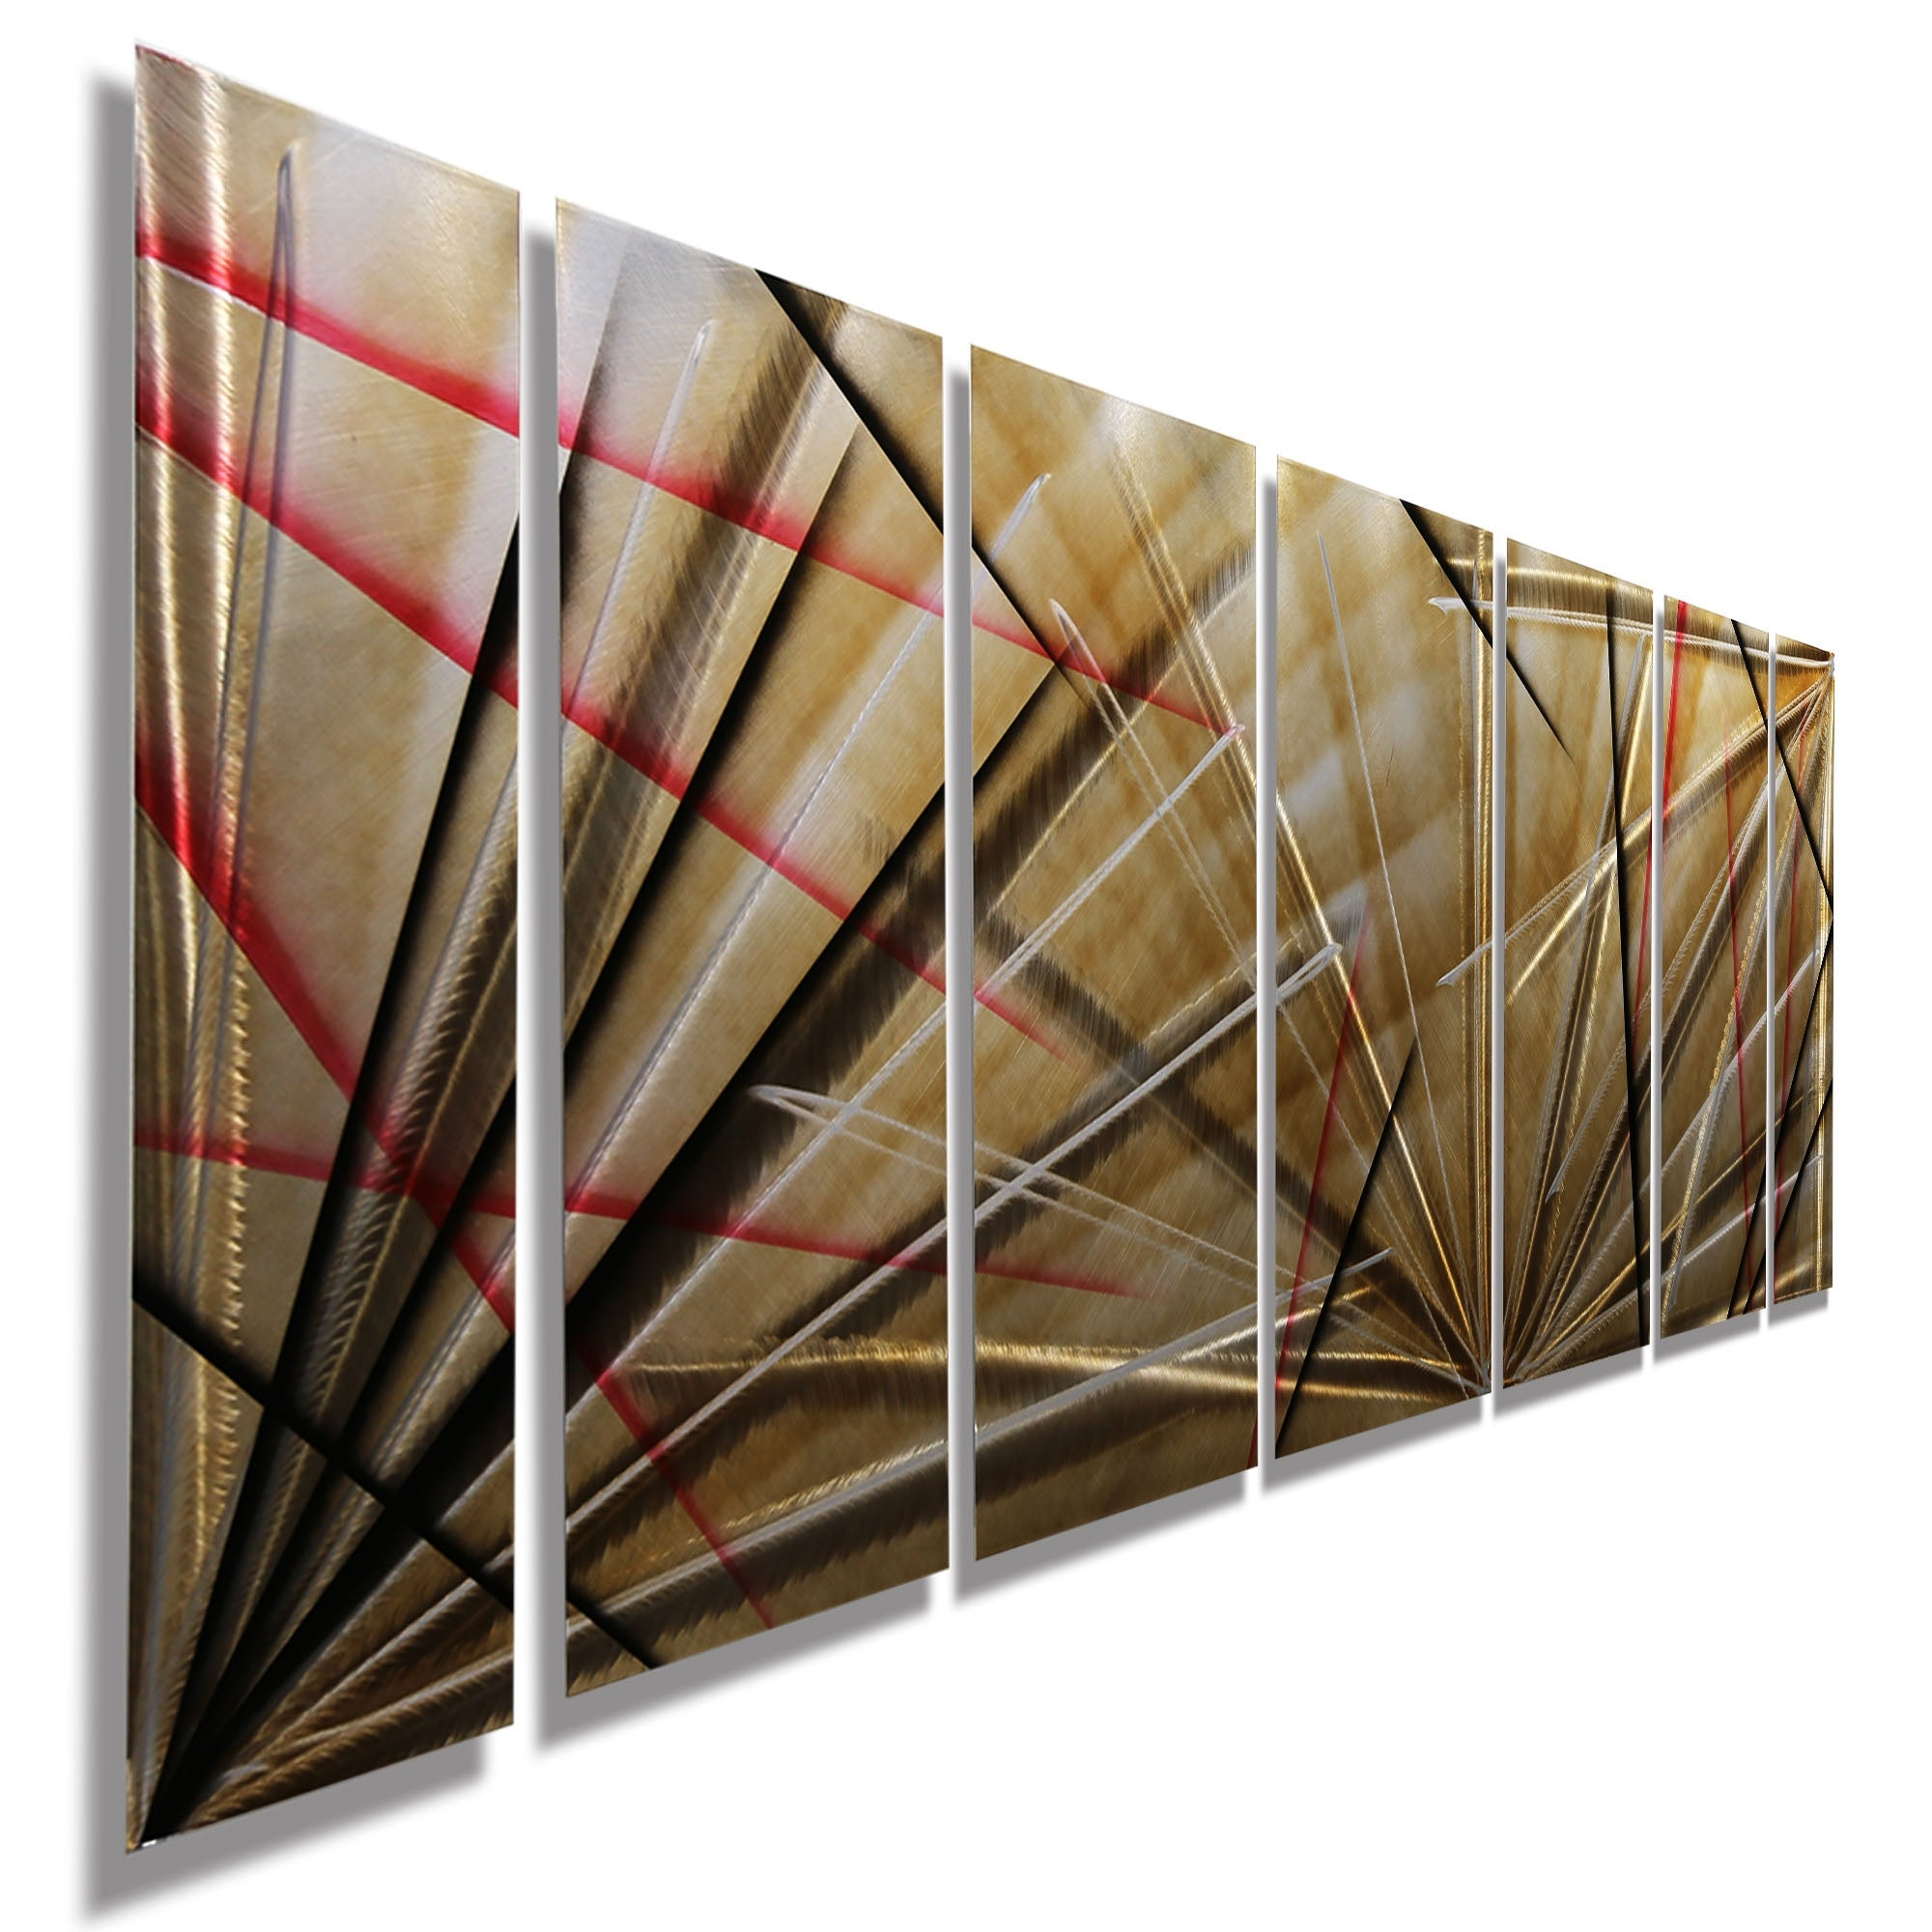 Statements2000 Red / Earthtone Abstract Metal Wall Art Painting by Jon Allen - Meteor Eclipse - Thumbnail 0